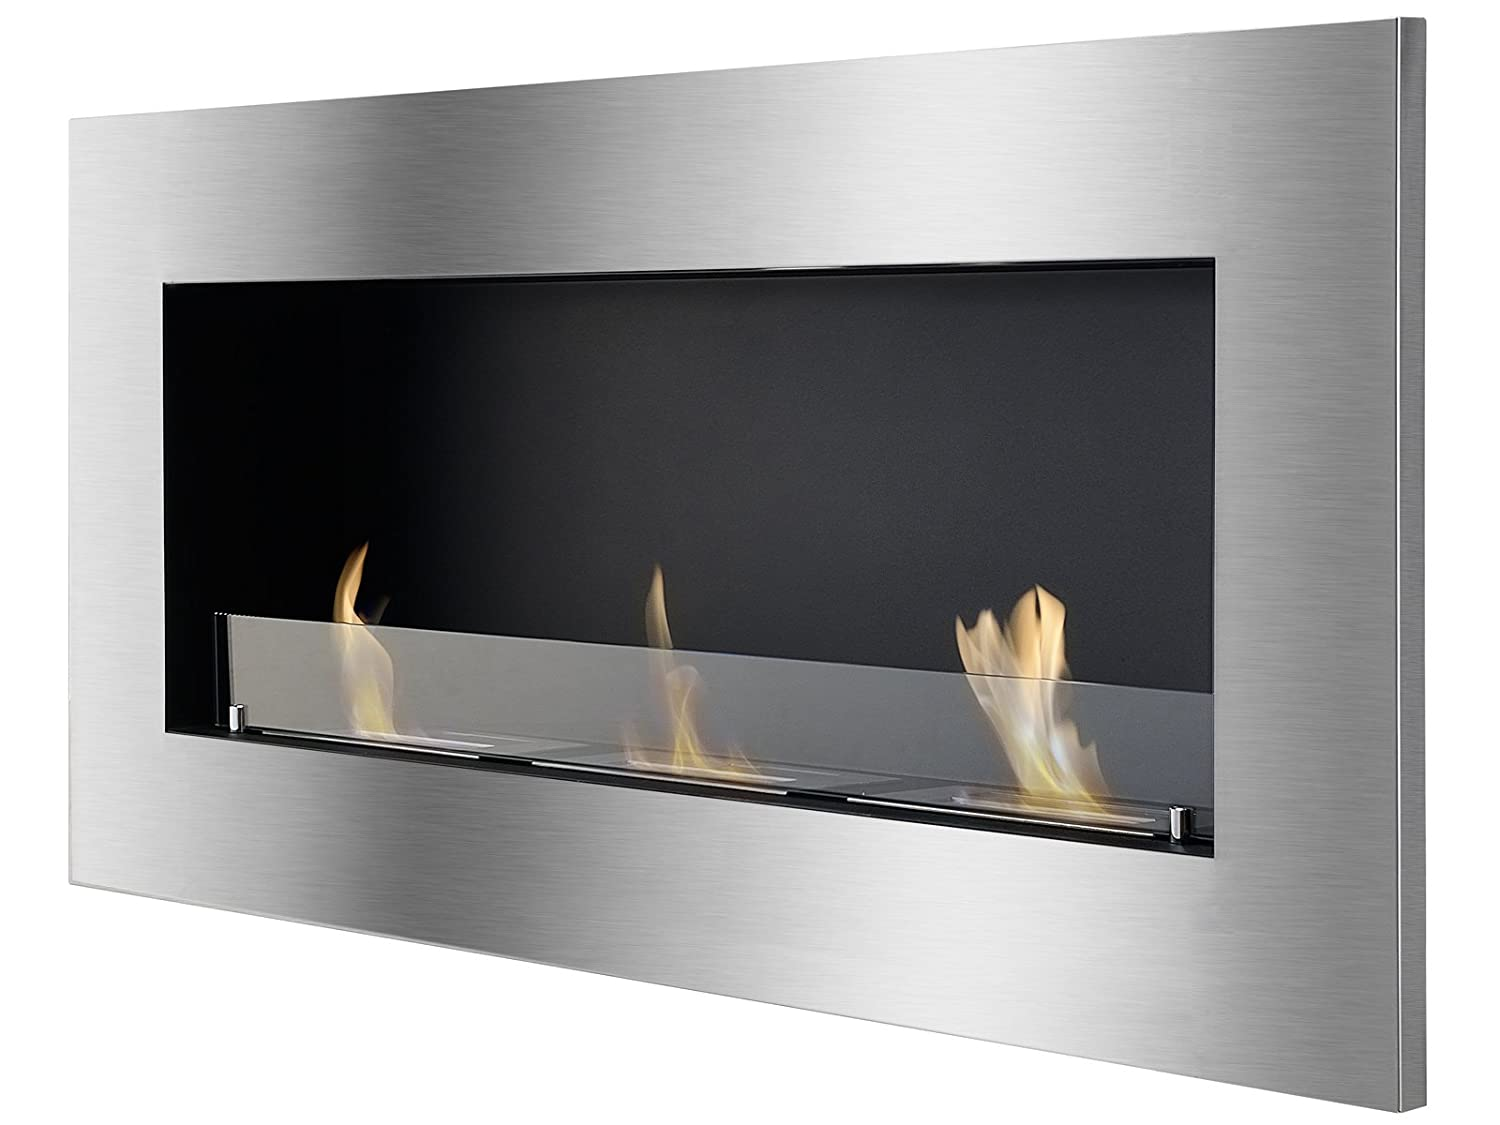 Buy Ignis Ventless Bio Ethanol Fireplace Optimum with Safety Glass: Gel & Ethanol Fireplaces - Amazon.com ? FREE DELIVERY possible on eligible purchases